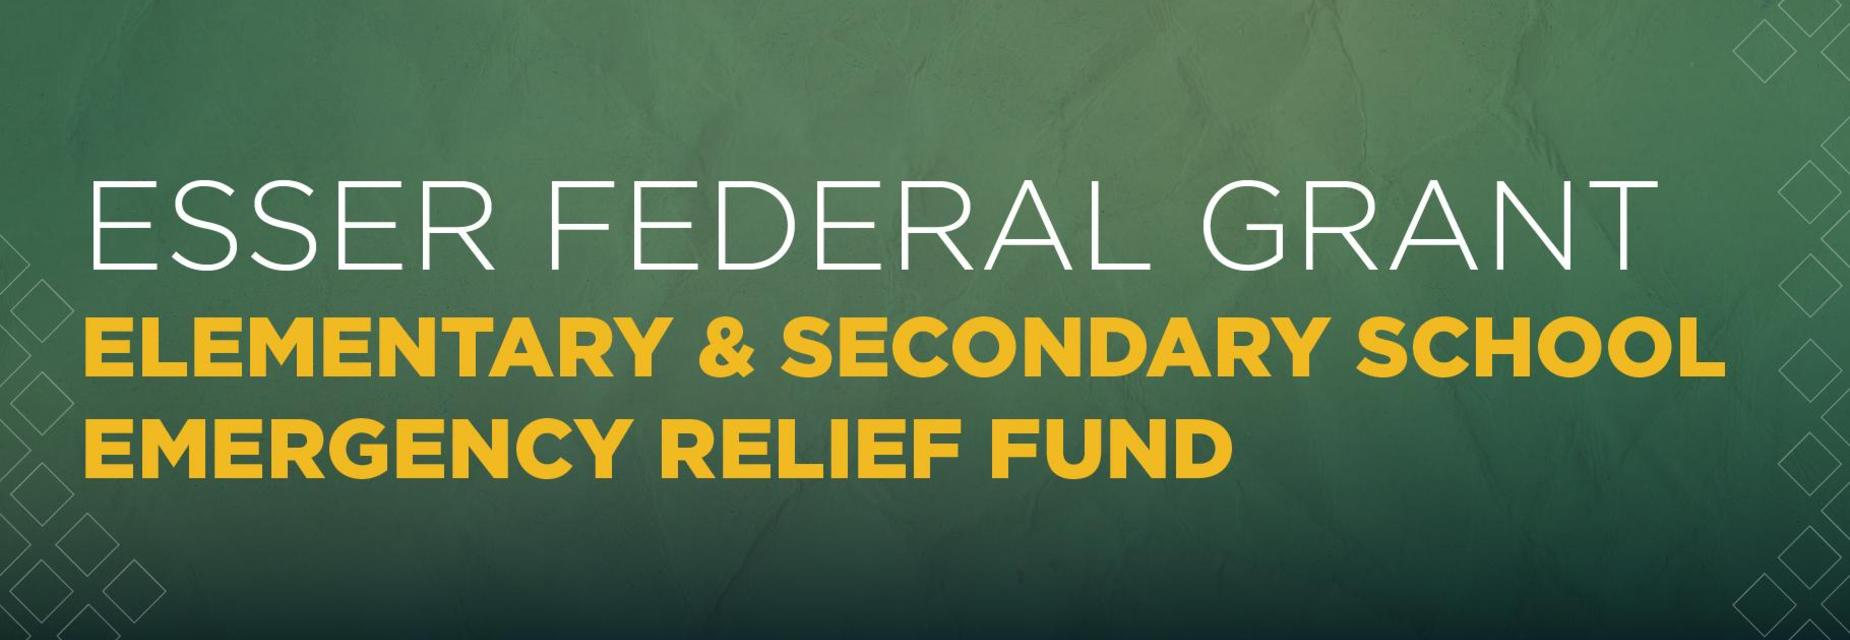 graphic for ESSER funds